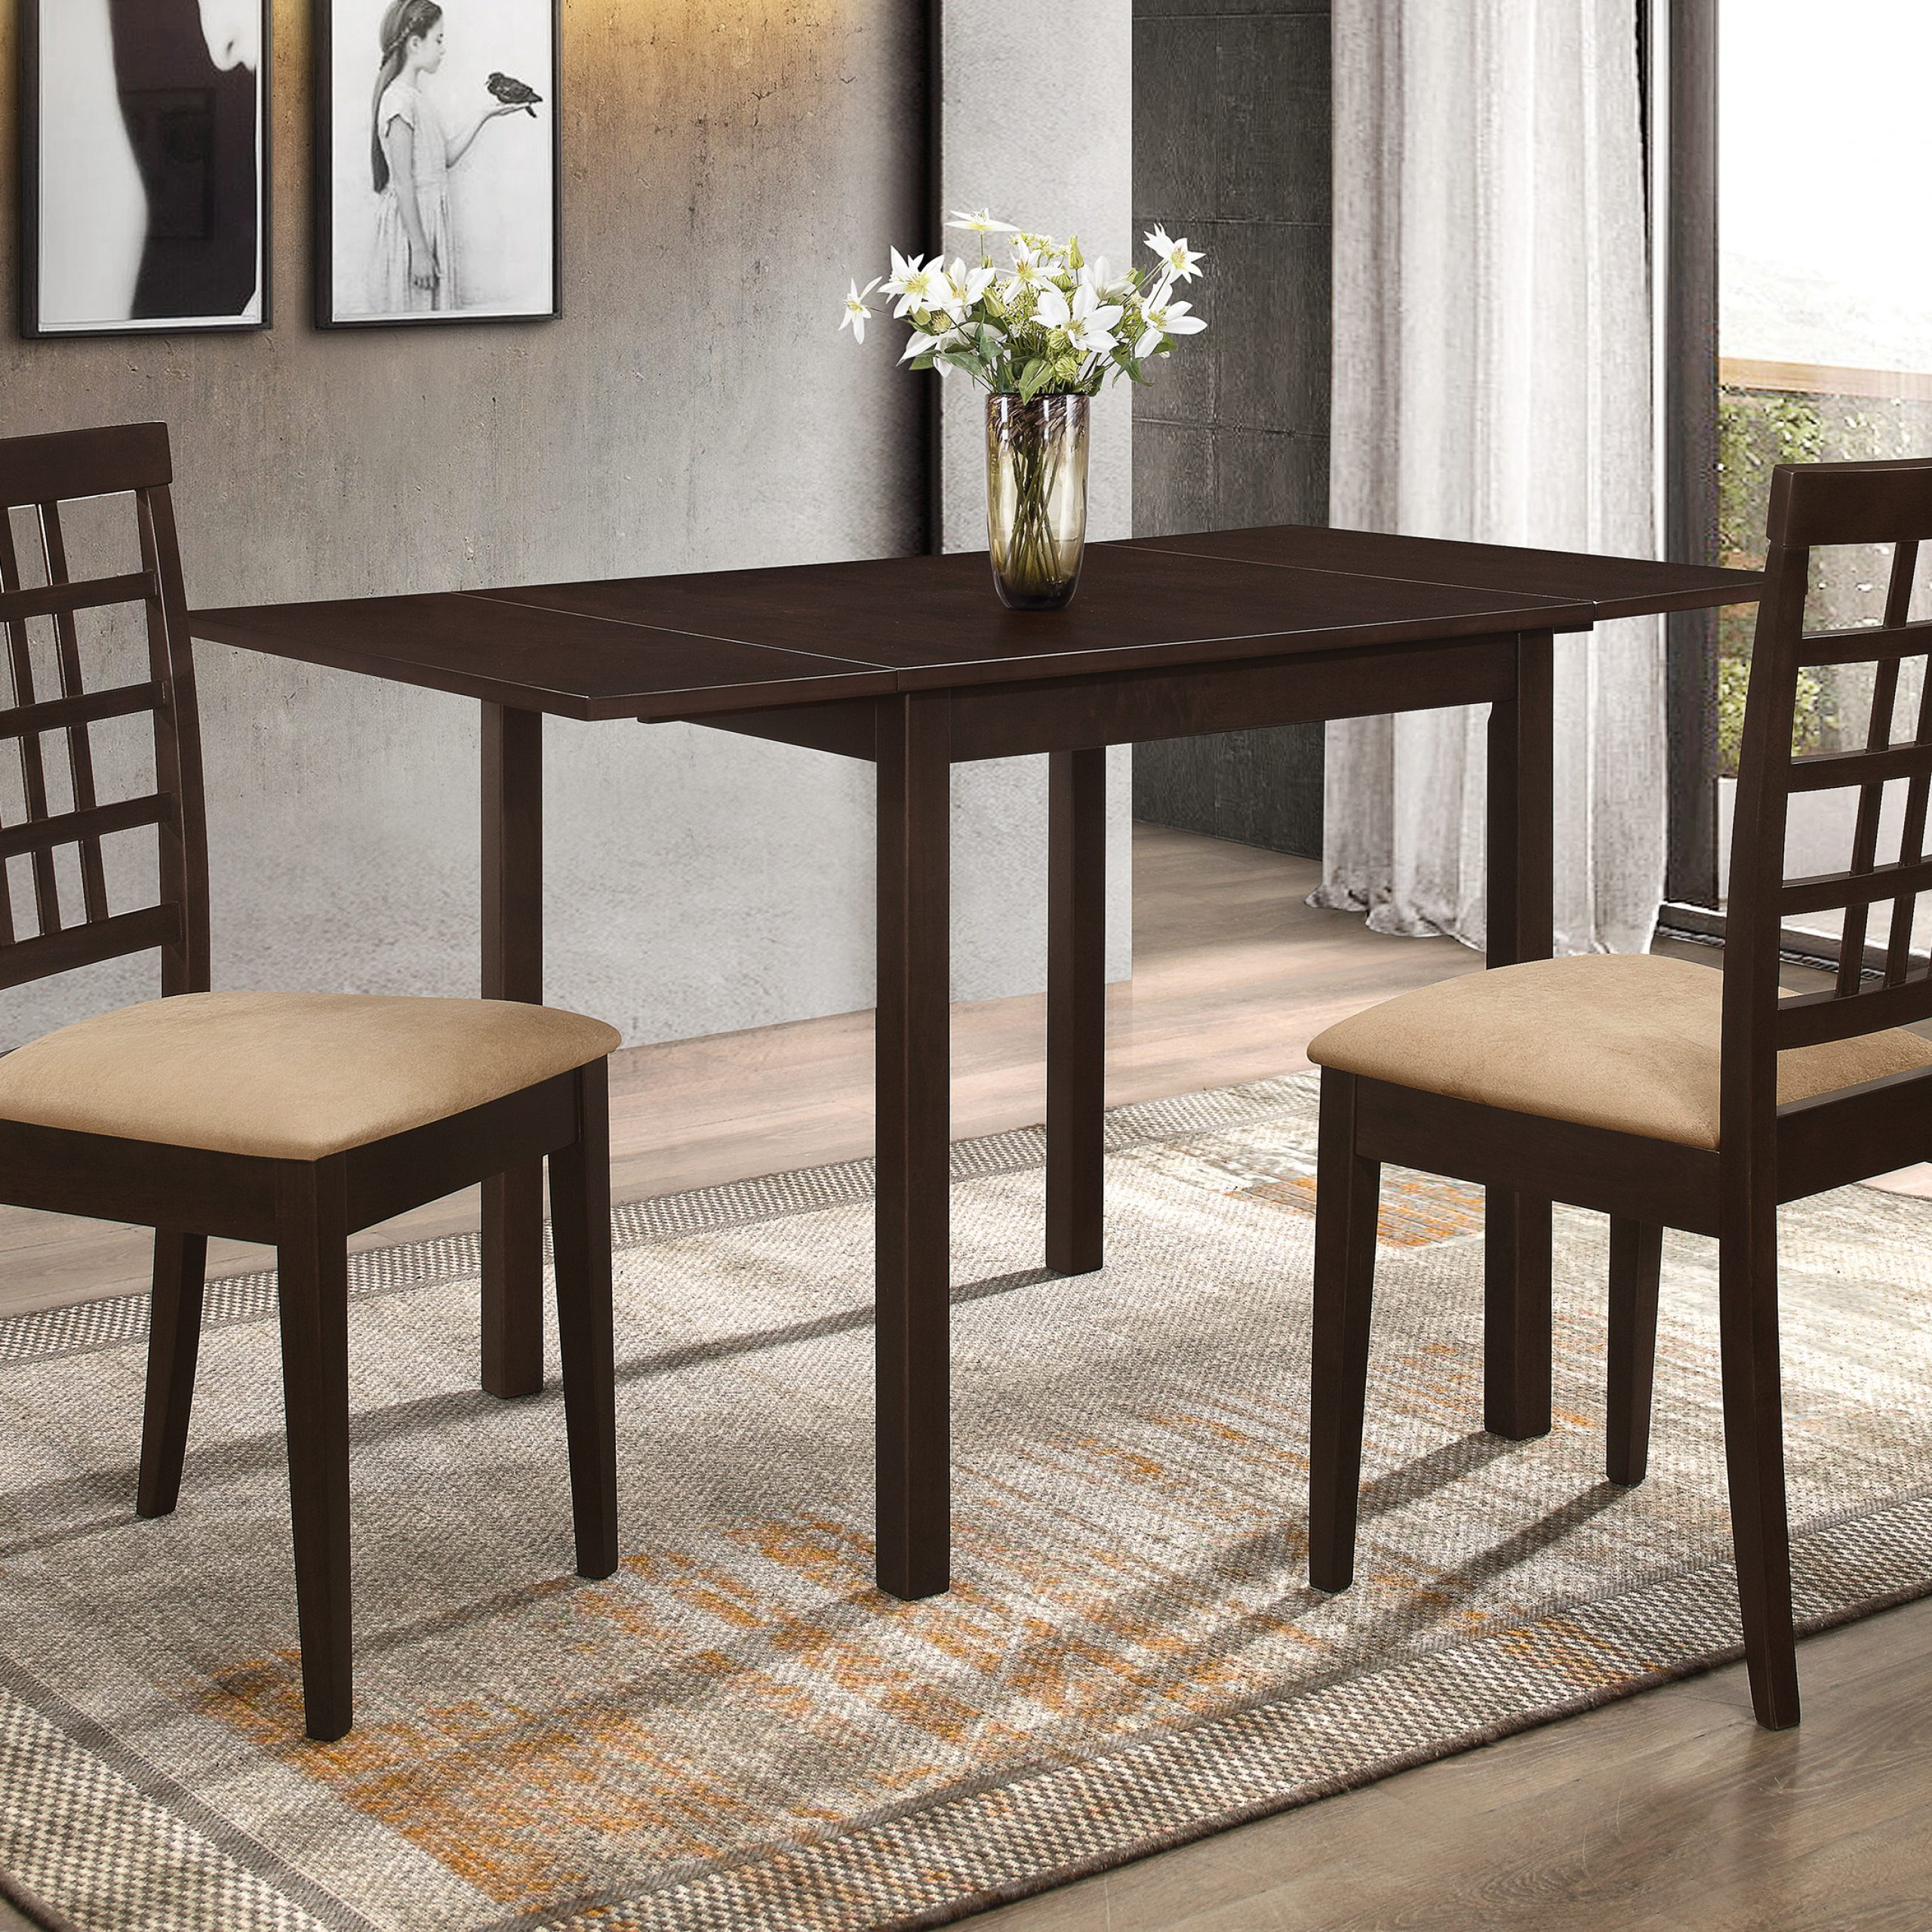 Recent Transitional 4-Seating Drop-Leaf Casual Dining Tables regarding Kelso Rectangular Dining Table With Drop Leaf Cappuccino